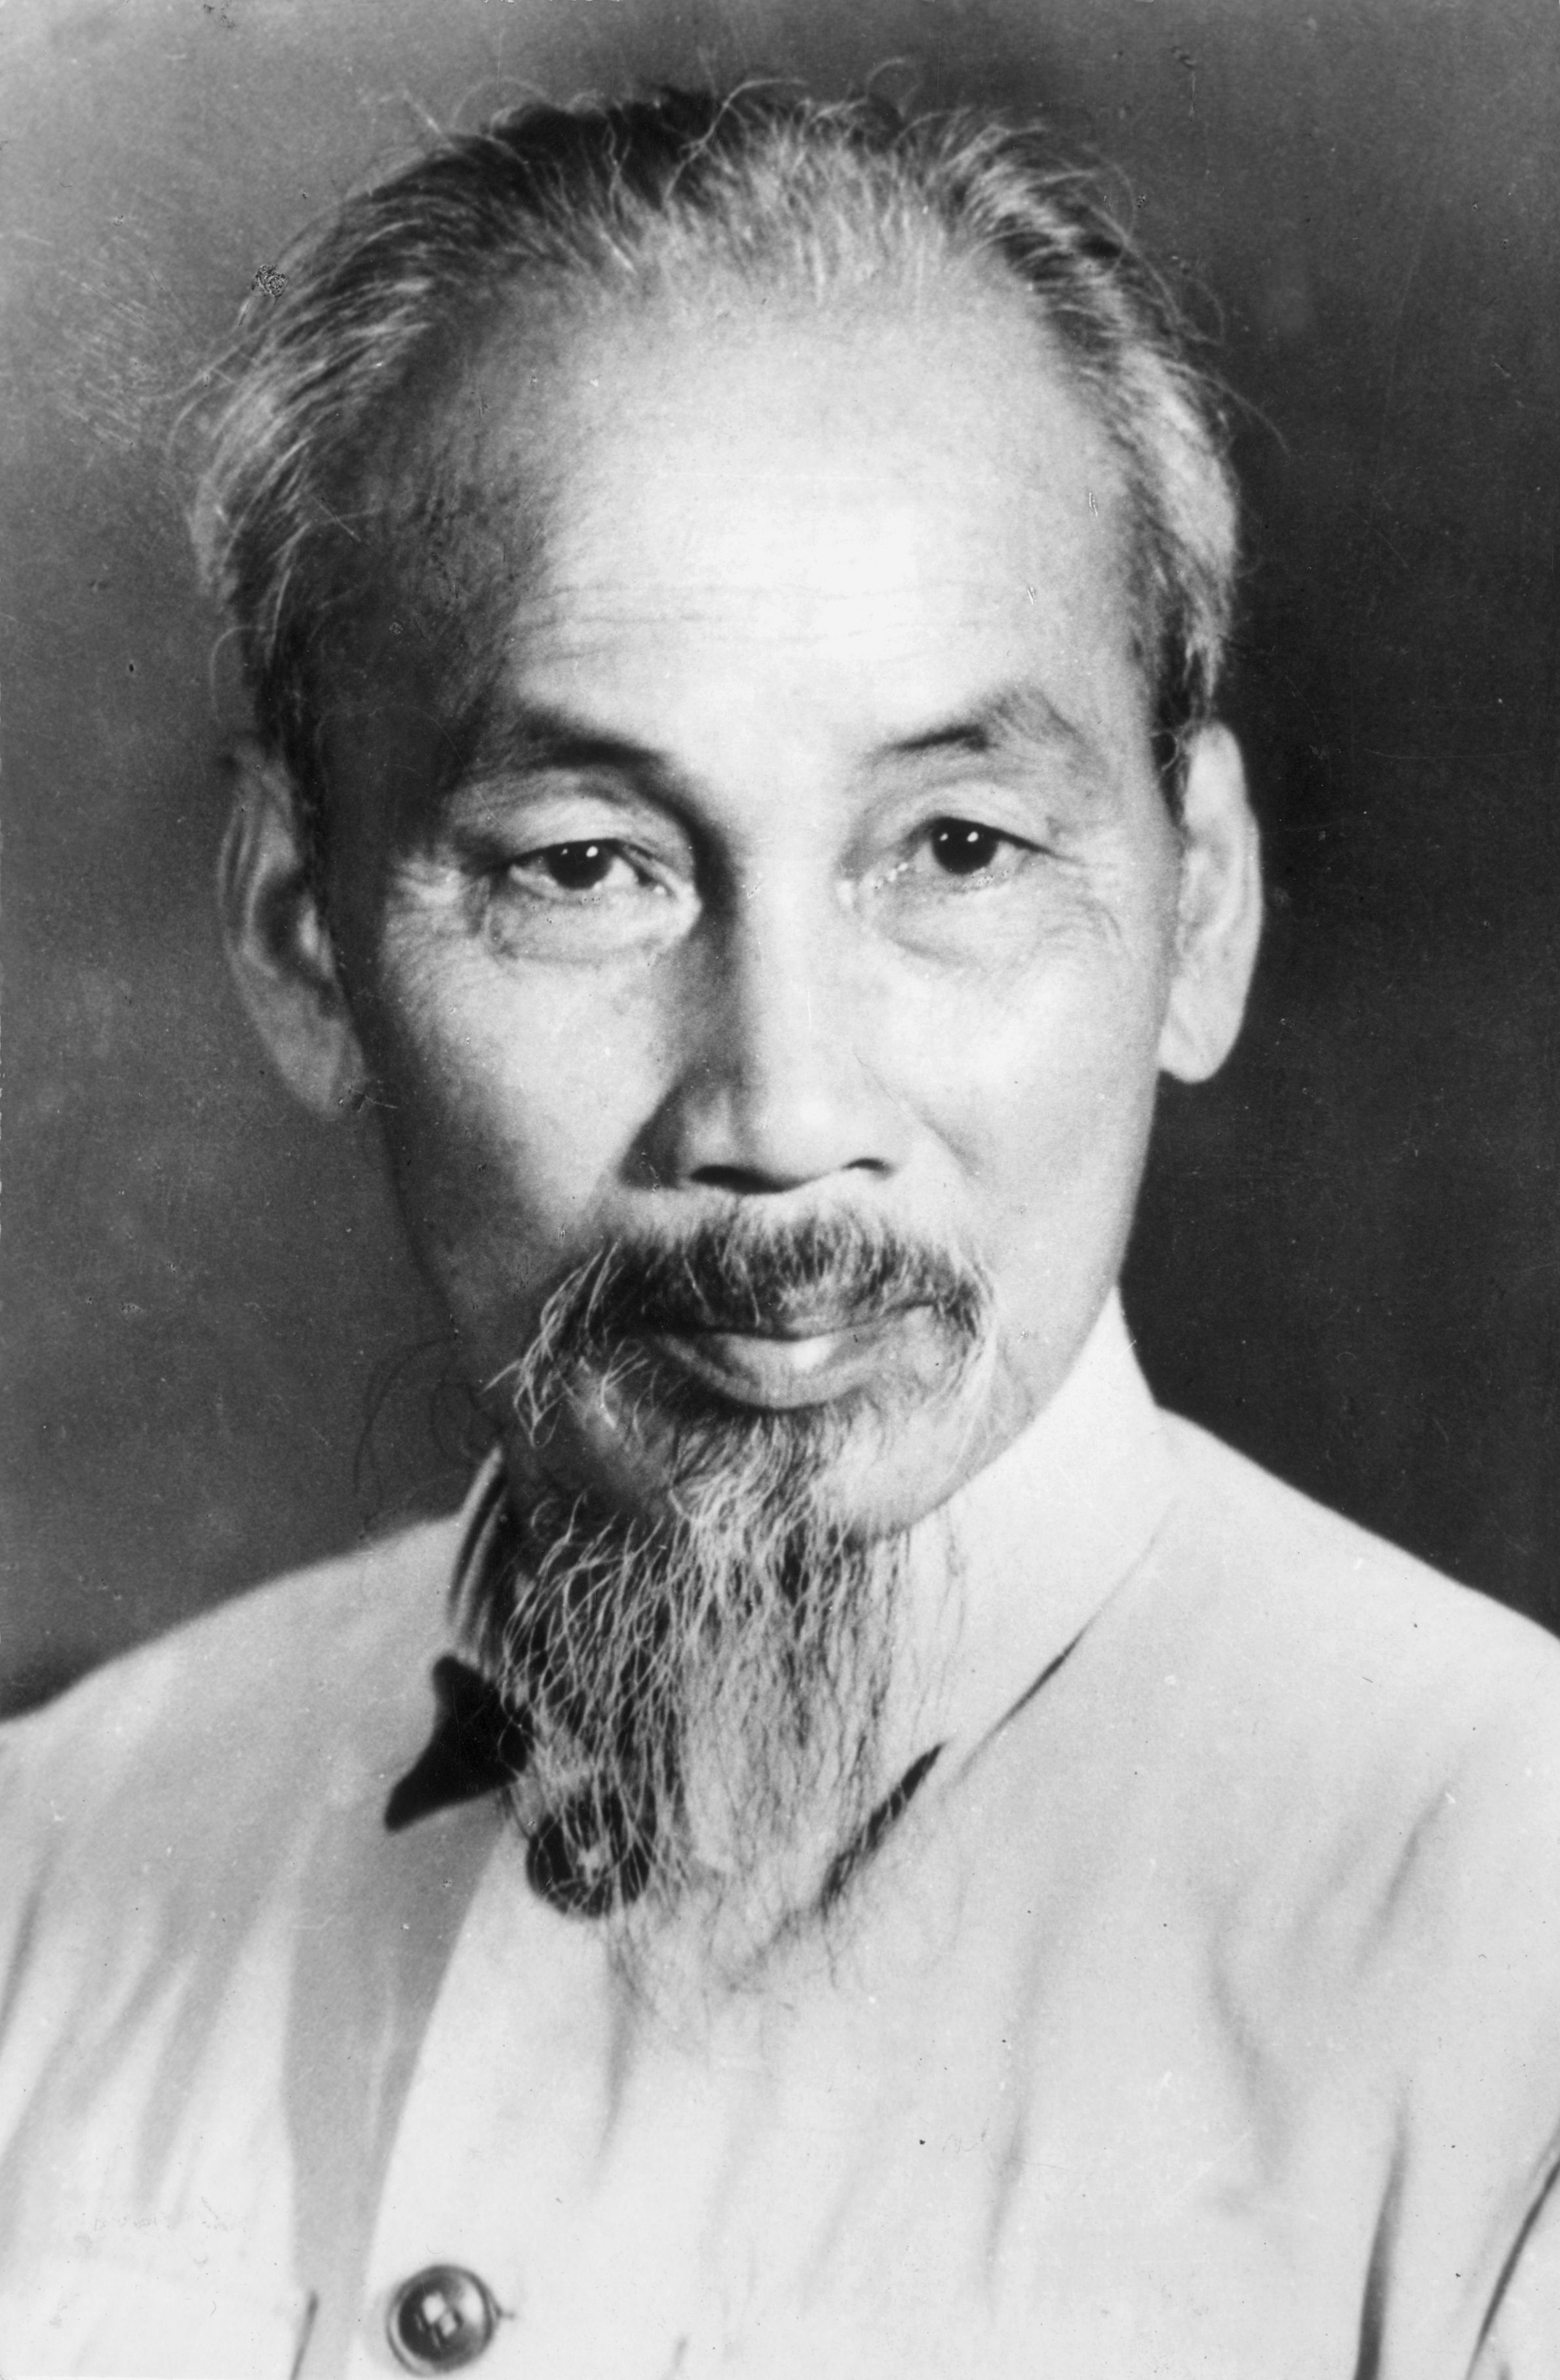 This picture is of the north Vietnamese army (NVA) leader, Ho Chi Minh.